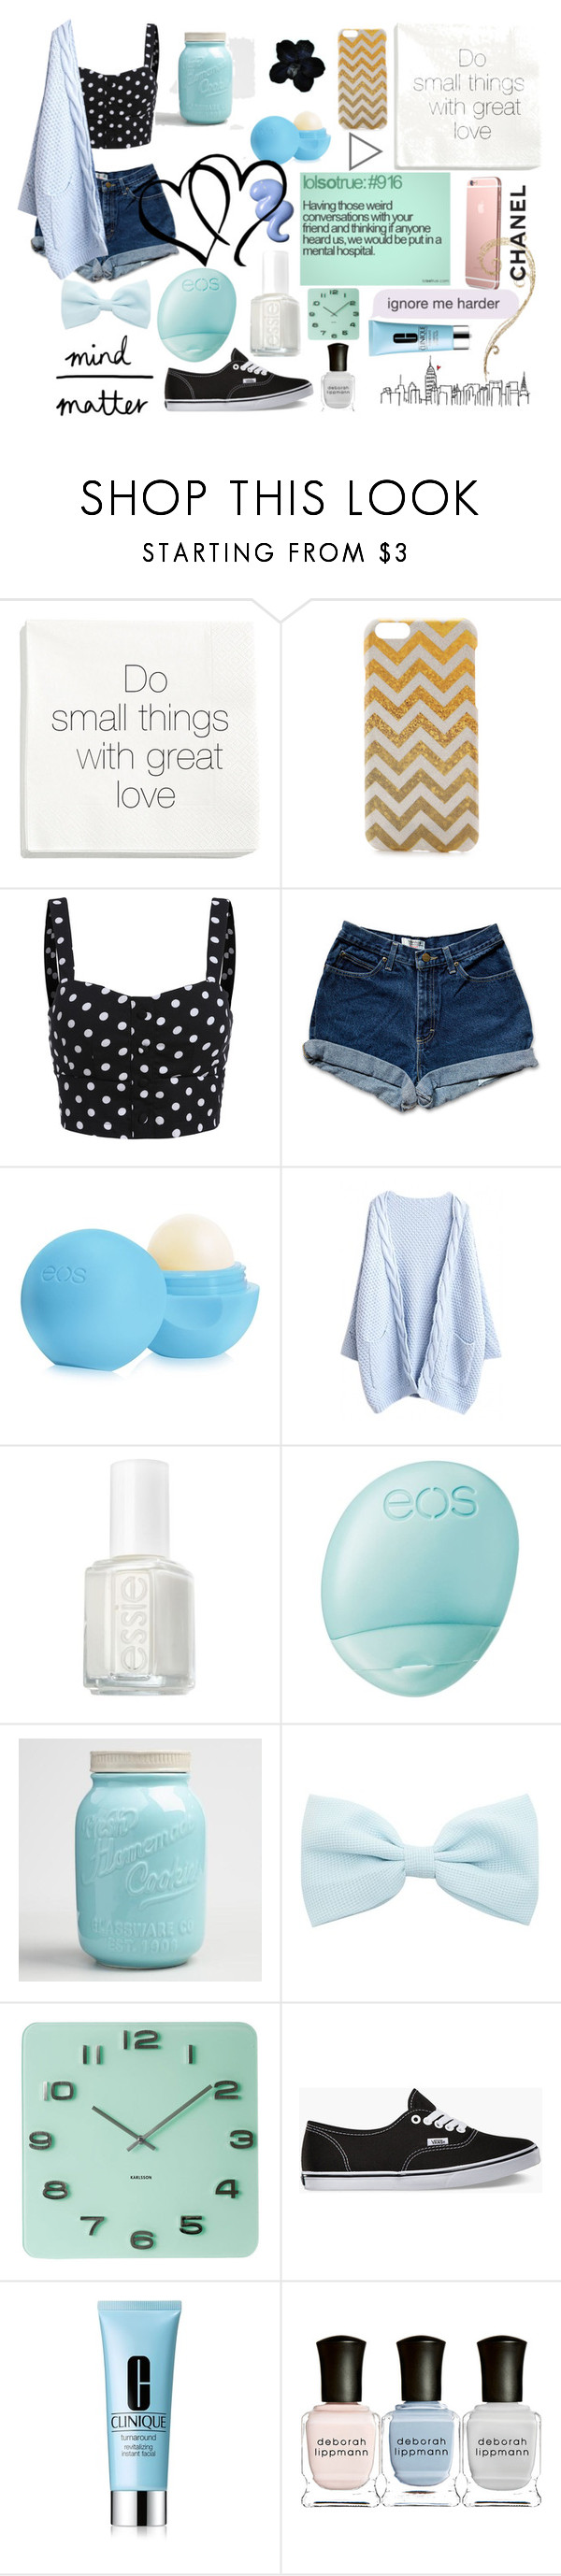 """Untitled #38"" by juststopandbreath ❤ liked on Polyvore featuring H&M, Monika Strigel, Eos, Essie, Cost Plus World Market, Too Late, La Femme, Karlsson, Vans and Clinique"